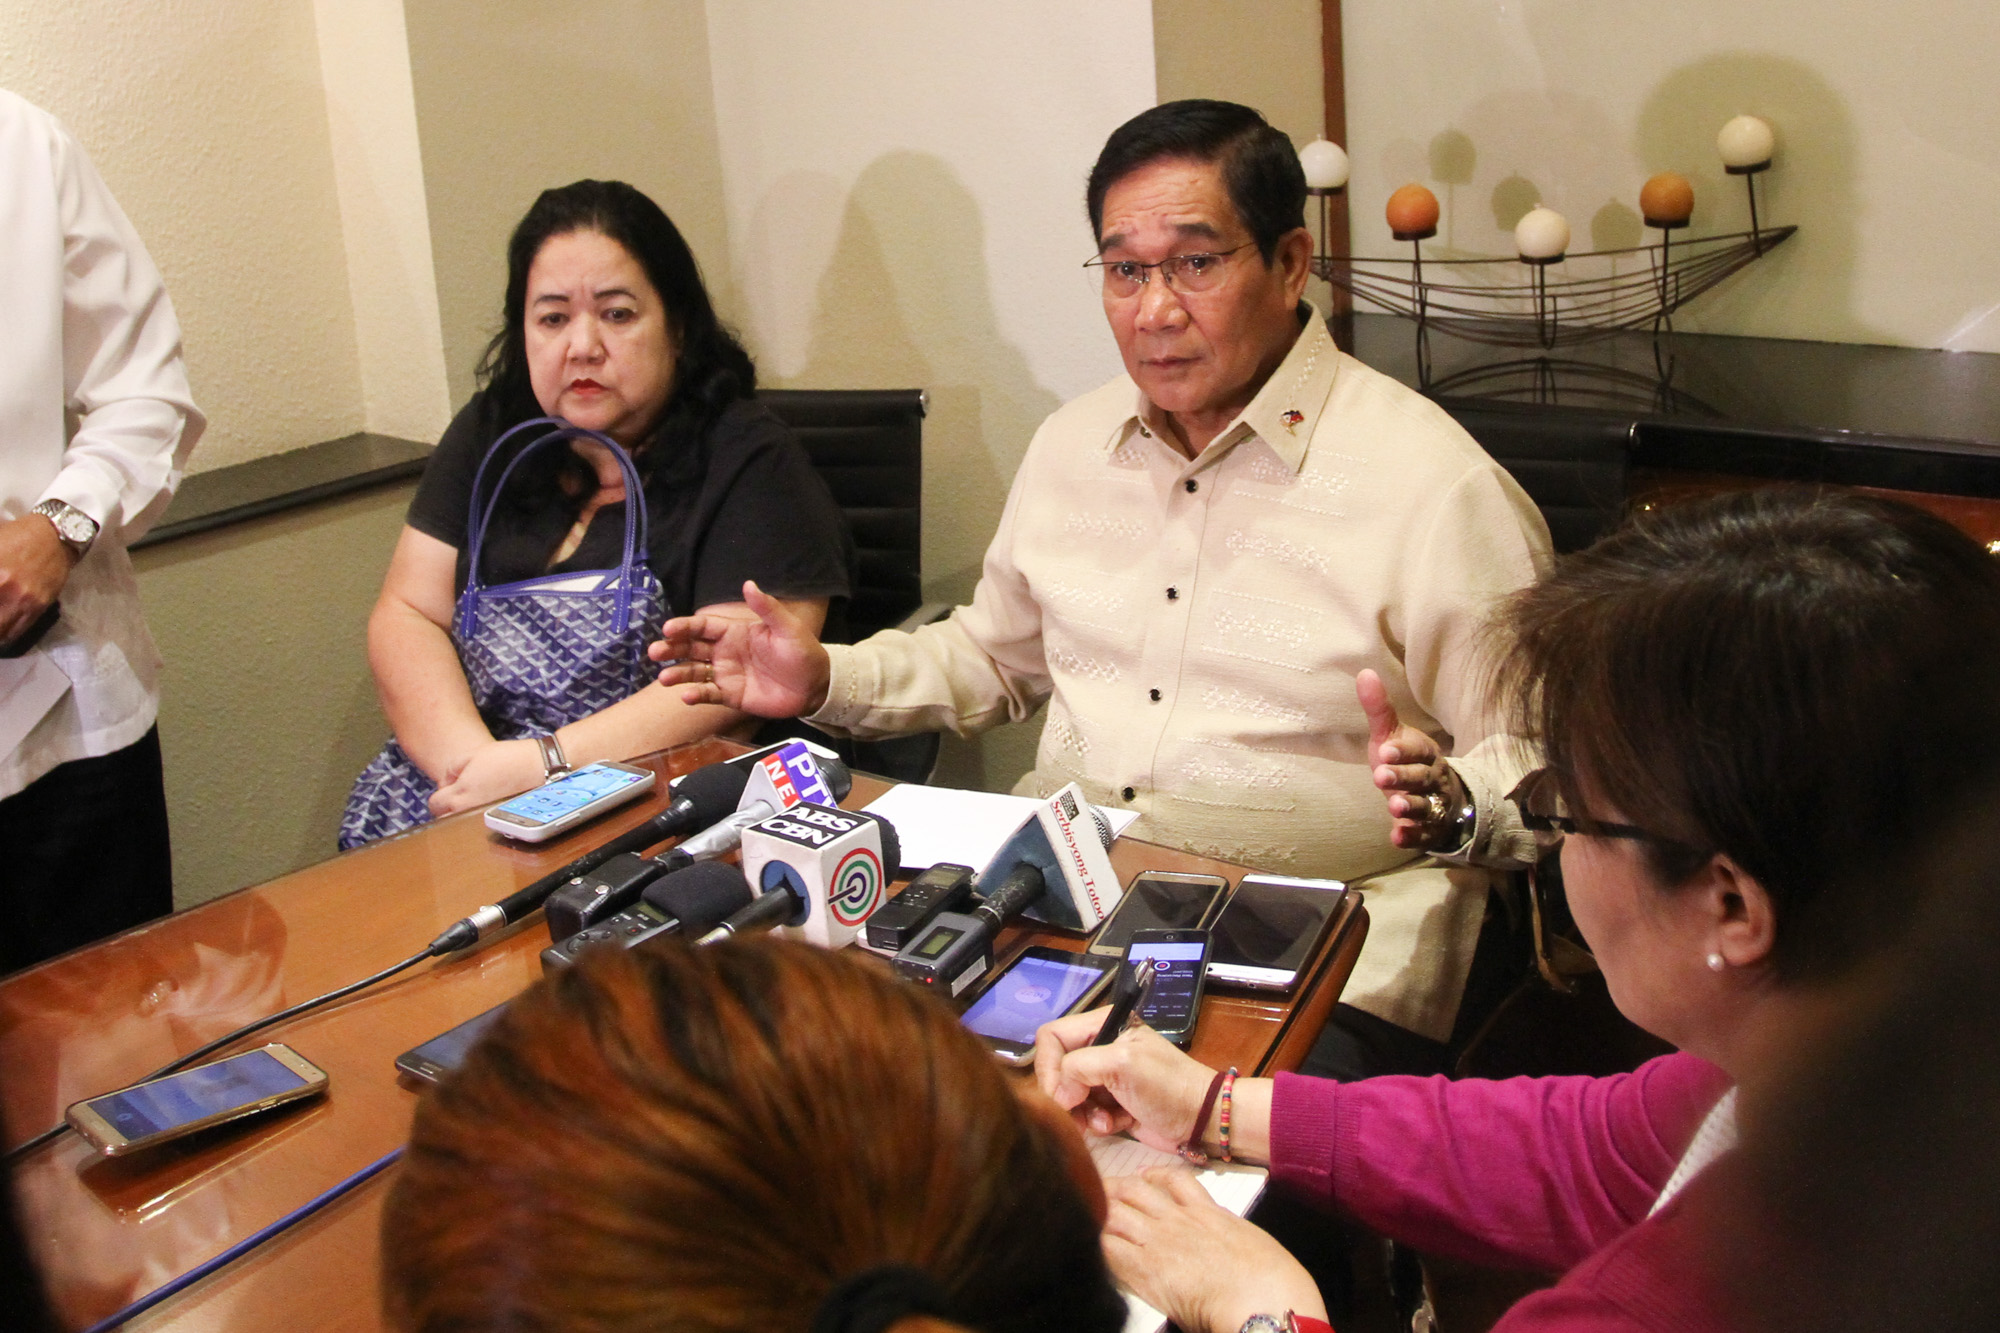 TALKS WITH RUSSIA. National Security Adviser Hermogenes Esperon holds a press conference at the Marco Polo Hotel in Davao City on February 17, 2017. Photo by Manman Dejeto/Rappler